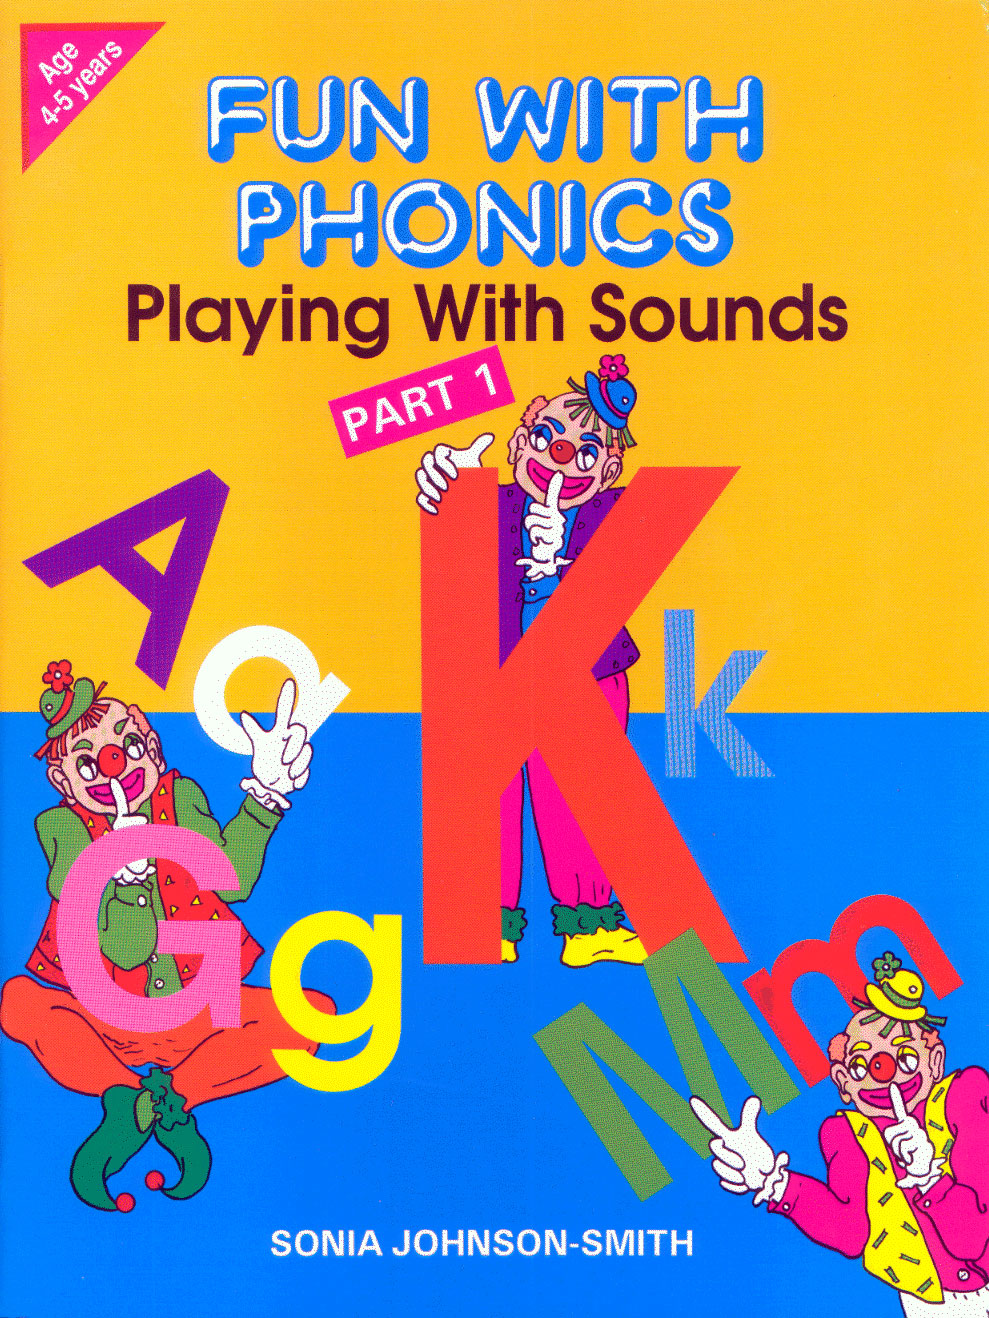 Fun With Phonics - Playing With Sounds Part 1